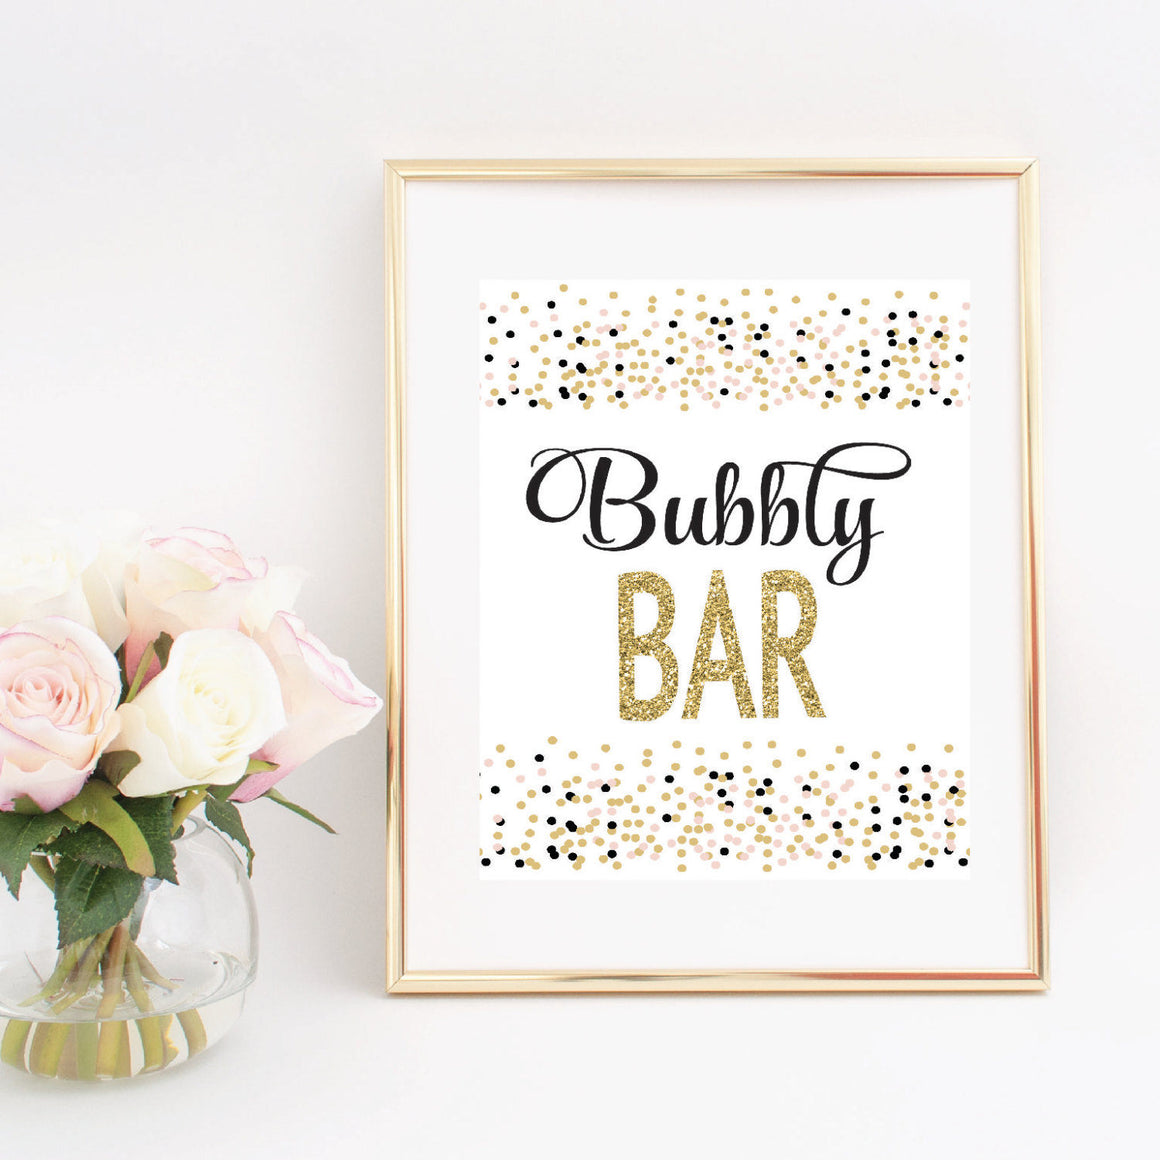 Bubbly bar digital download printable sign in a gold frame beside pink roses